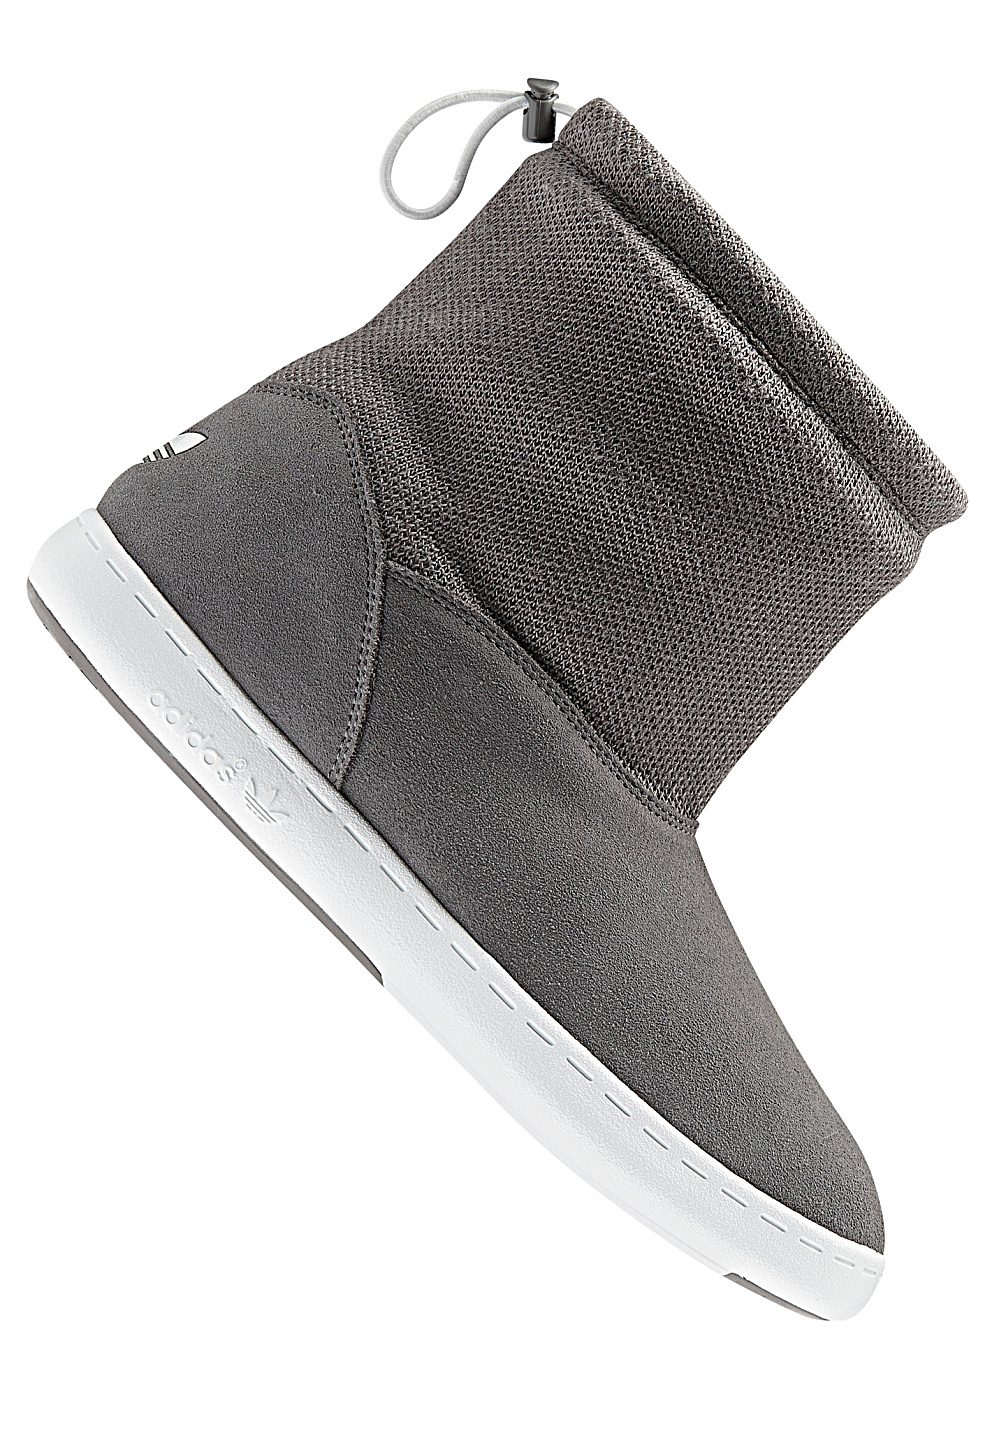 ADIDAS Attitude Winter Hi Boots for Women Grey